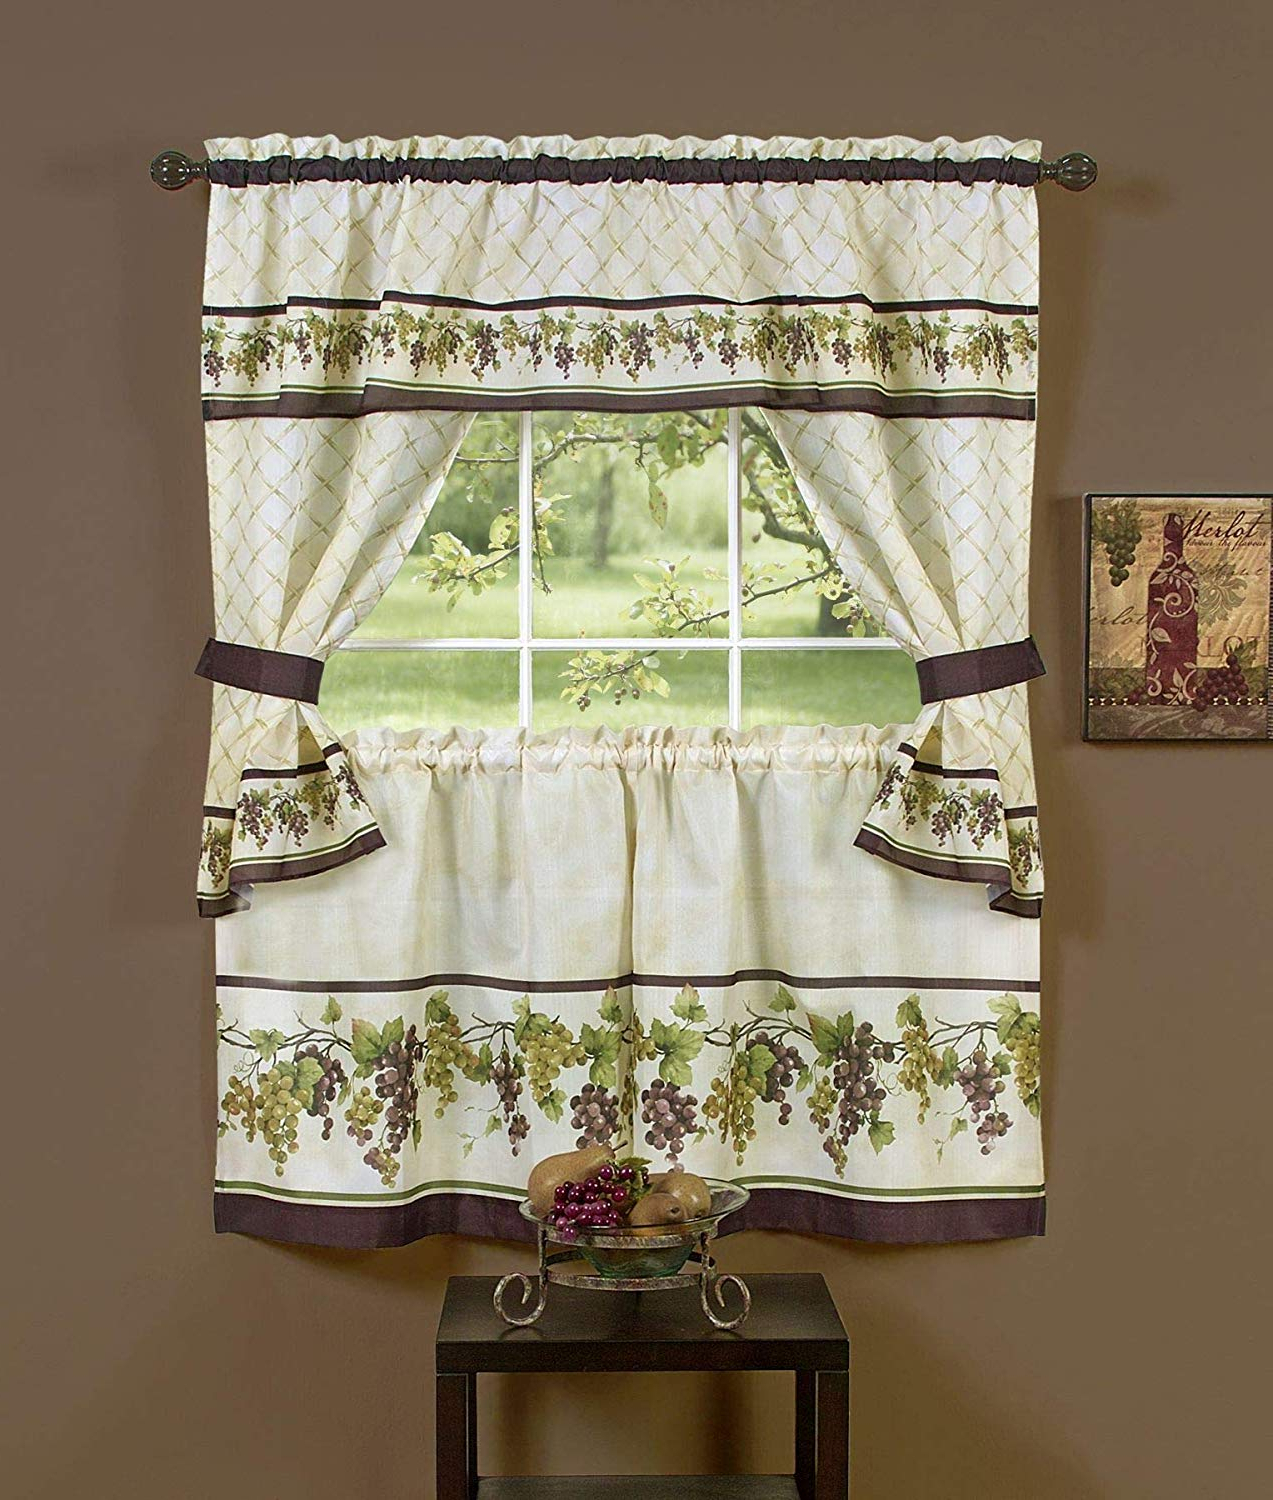 2020 Amazon: Ben & Jonah Primehome Collection Tuscany Cottage Within Tailored Toppers With Valances (View 11 of 20)